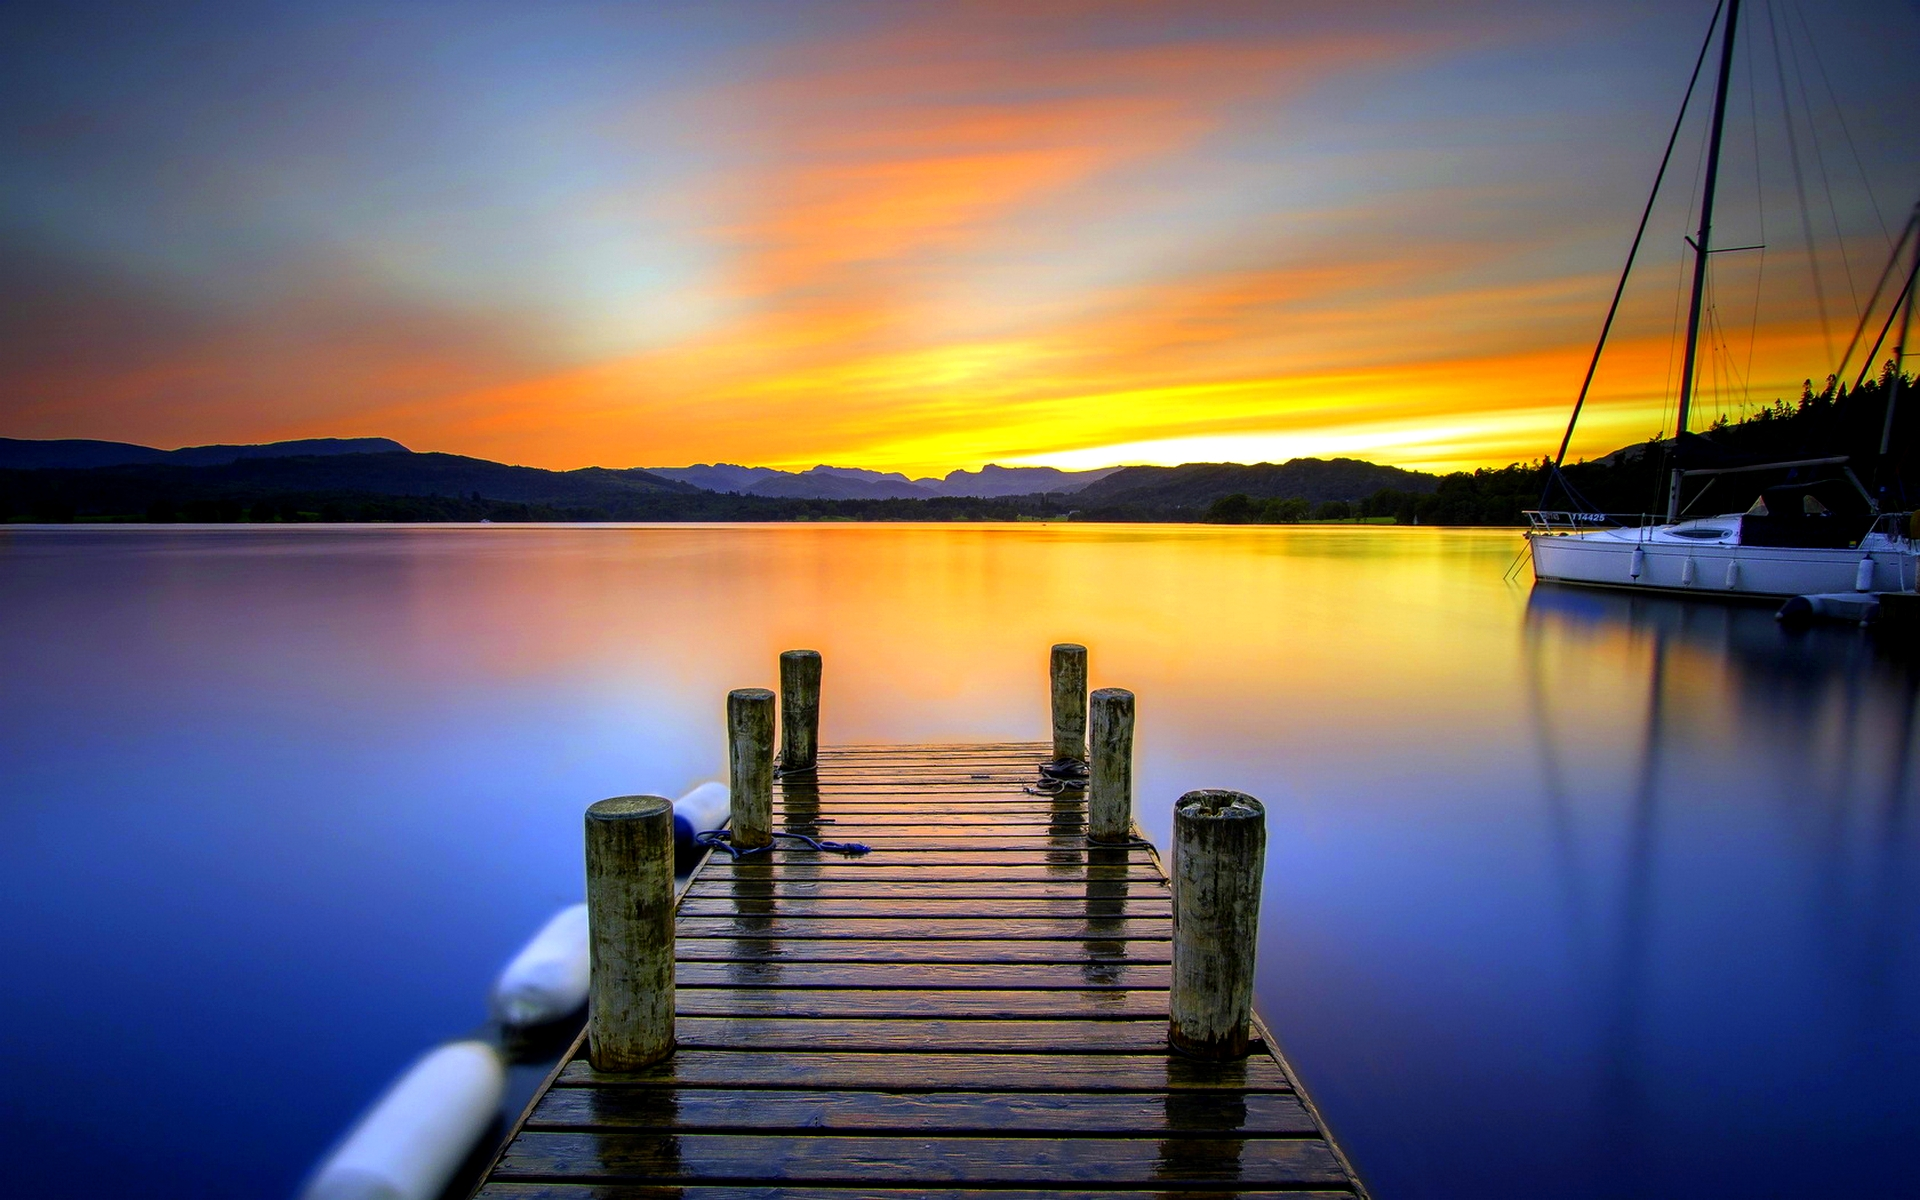 Pier At Sunset Hd Wallpapers